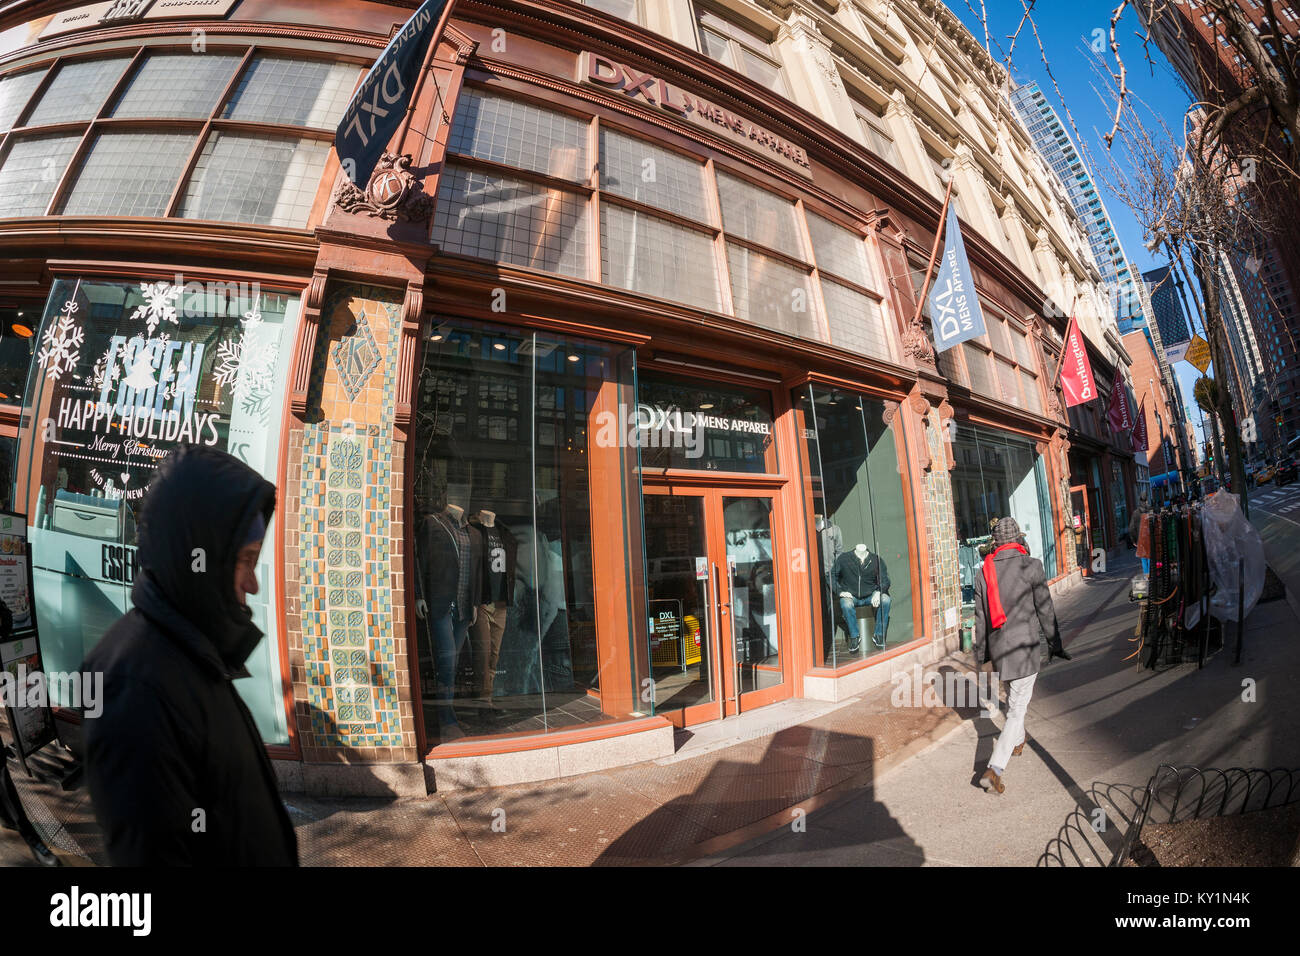 A Destination XL (DXL) store in the Chelsea neighborhood of New York on Thursday, December 28, 2017. The Destination - Stock Image